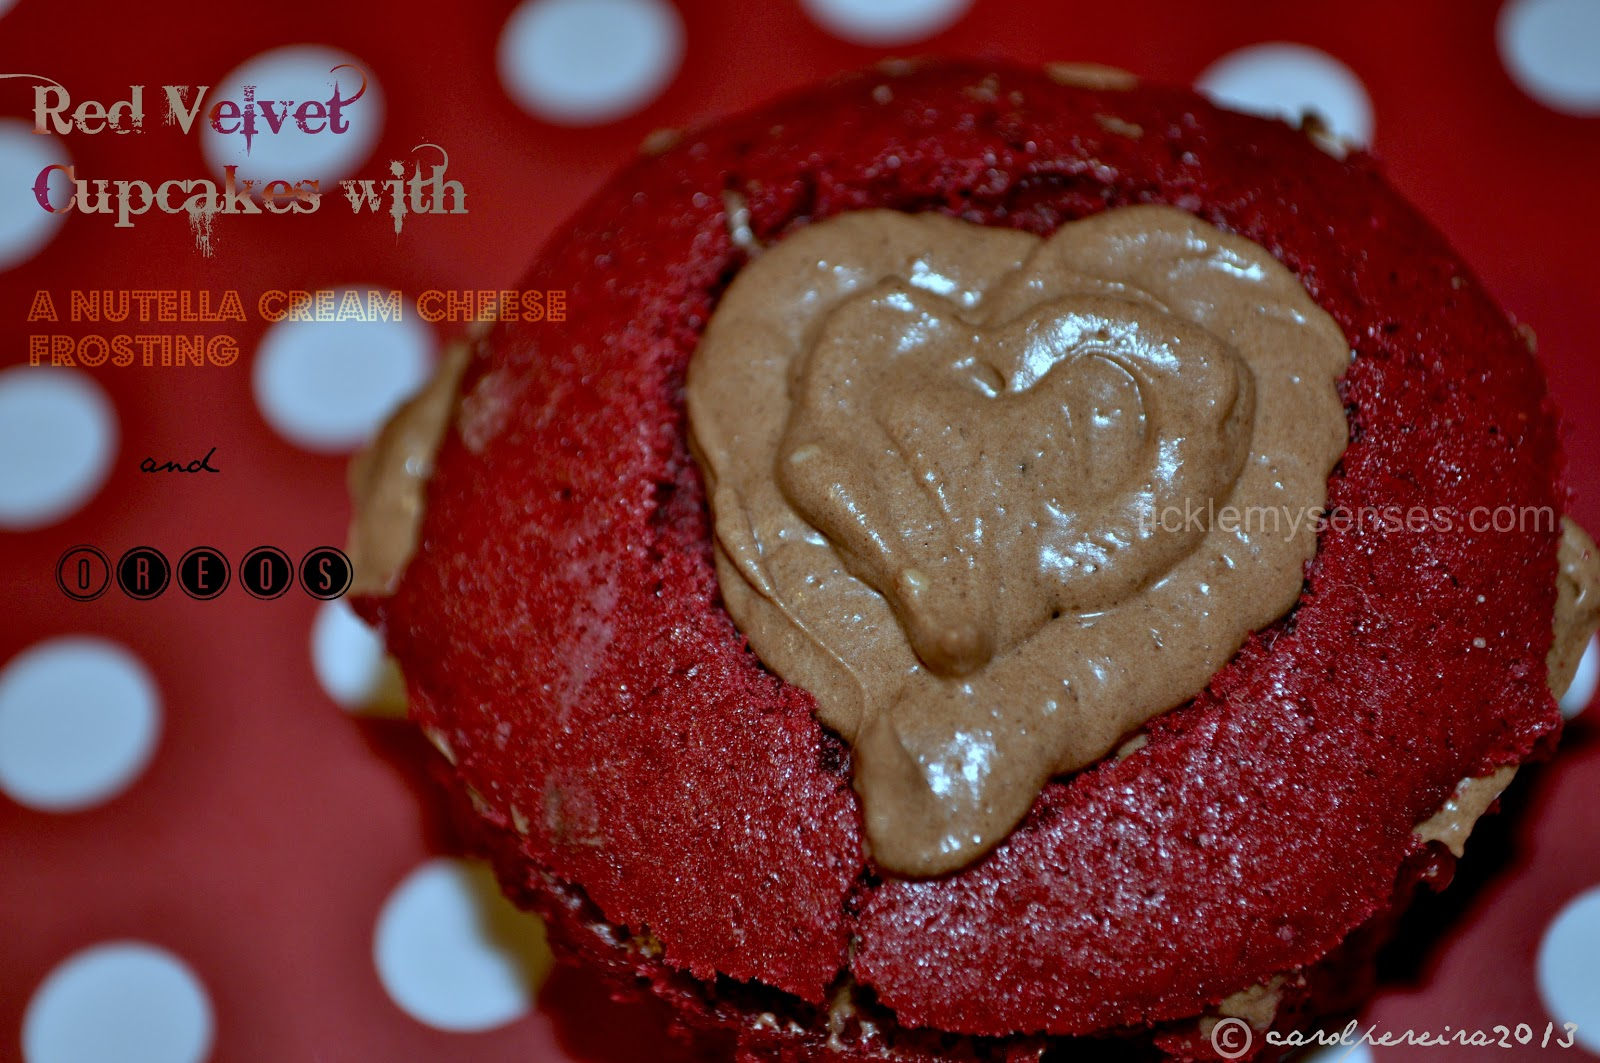 Red Velvet Nutella Cupcake Recipe Red Velvet Cupcakes With Oreos